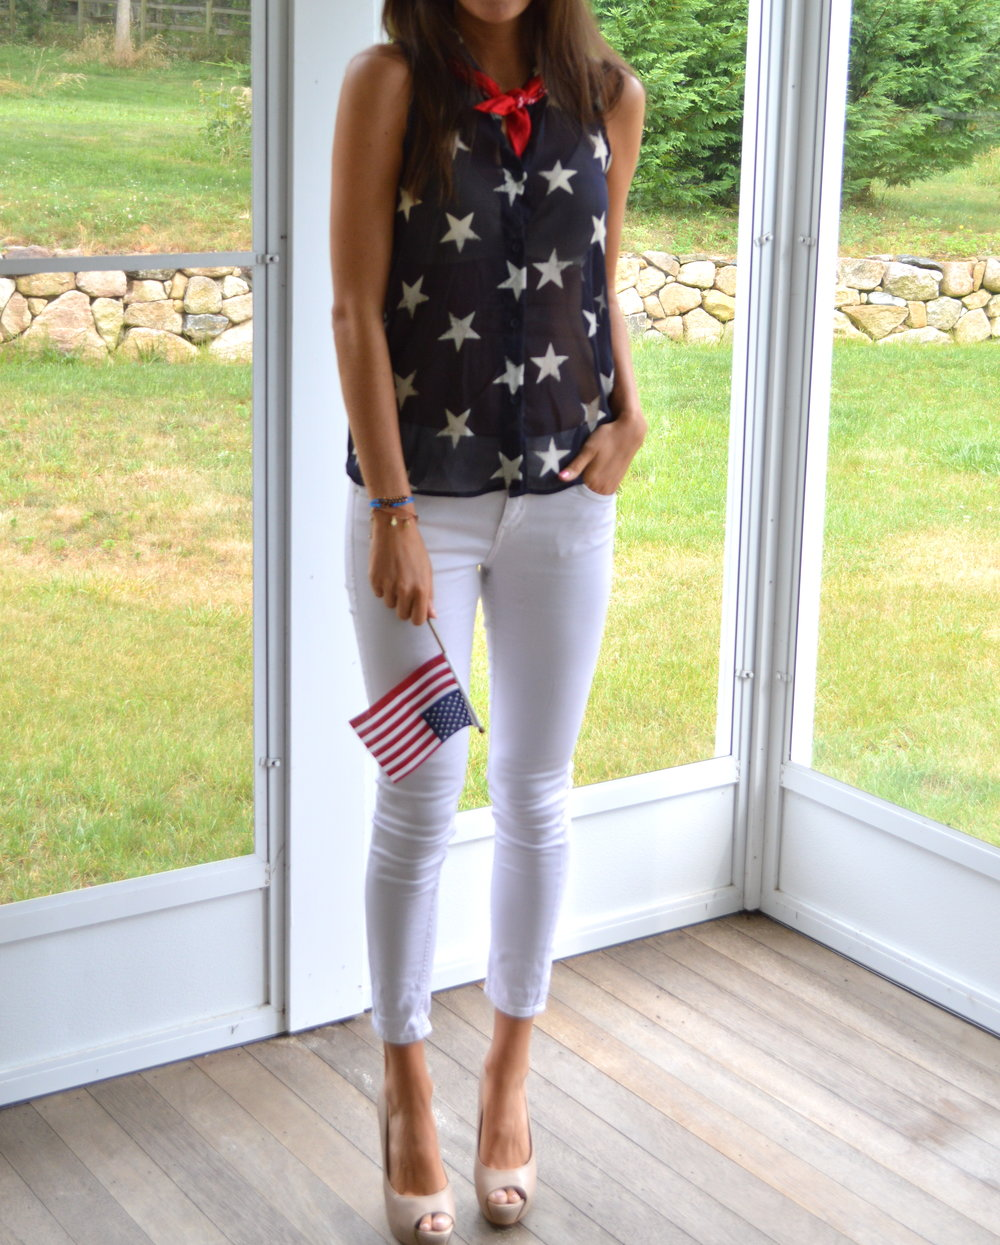 fourth-of-july-outfit-3.jpg